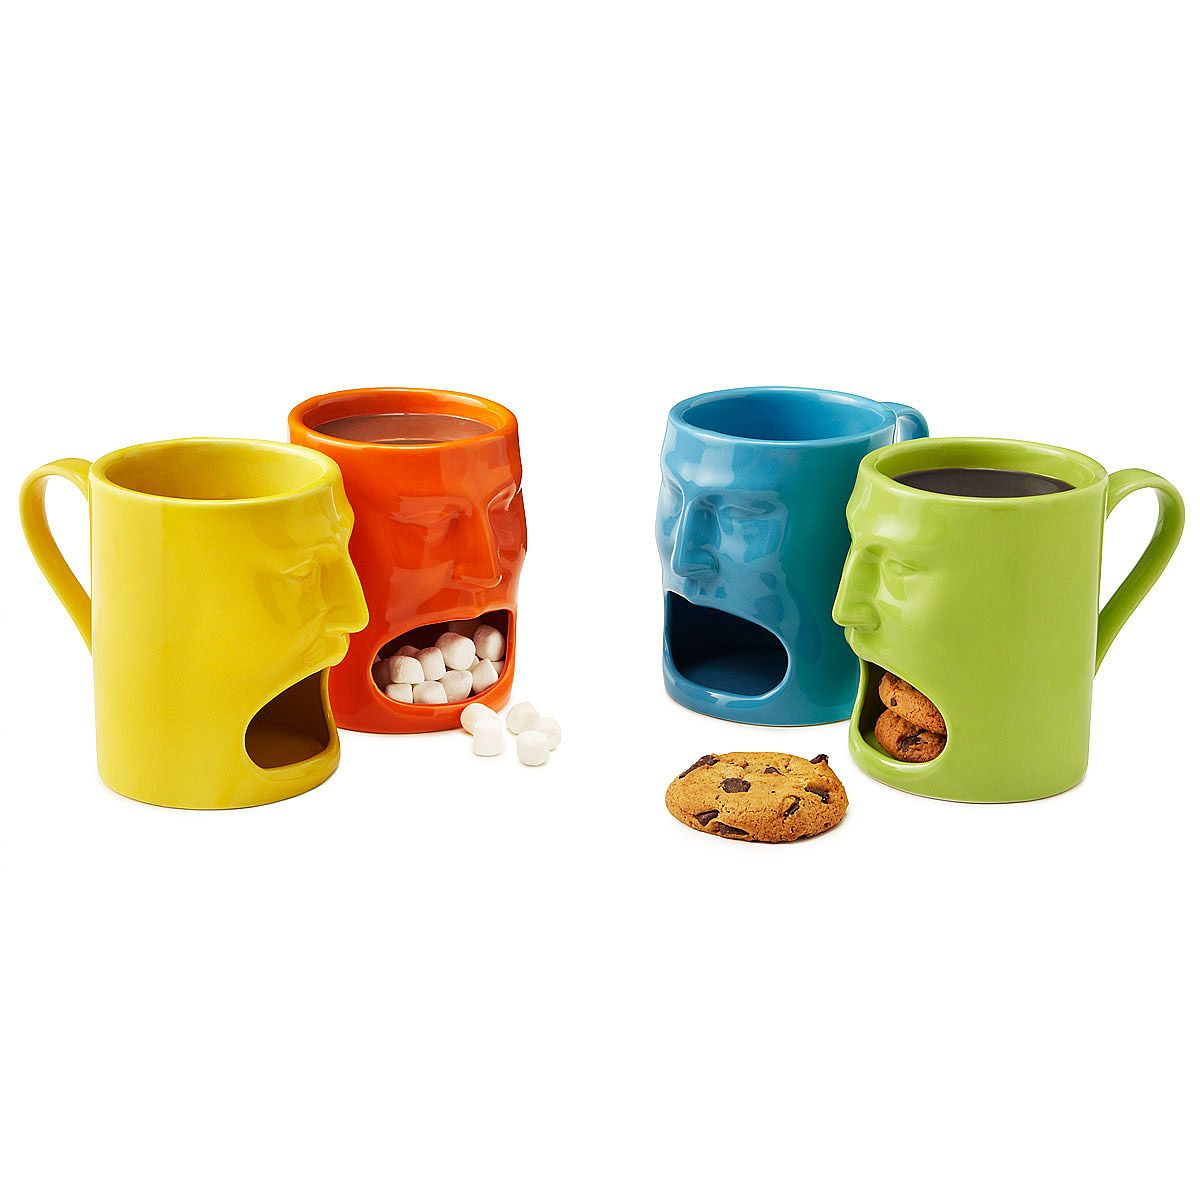 Amusing Hingyour Warm Or Face Mugs Set Coffee Cup Ny Shaped Coffee Mugs Ny Shaped Mugs Uk Se Ceramic Mugs Have A Cubby Face Shapes furniture Funny Shaped Mugs